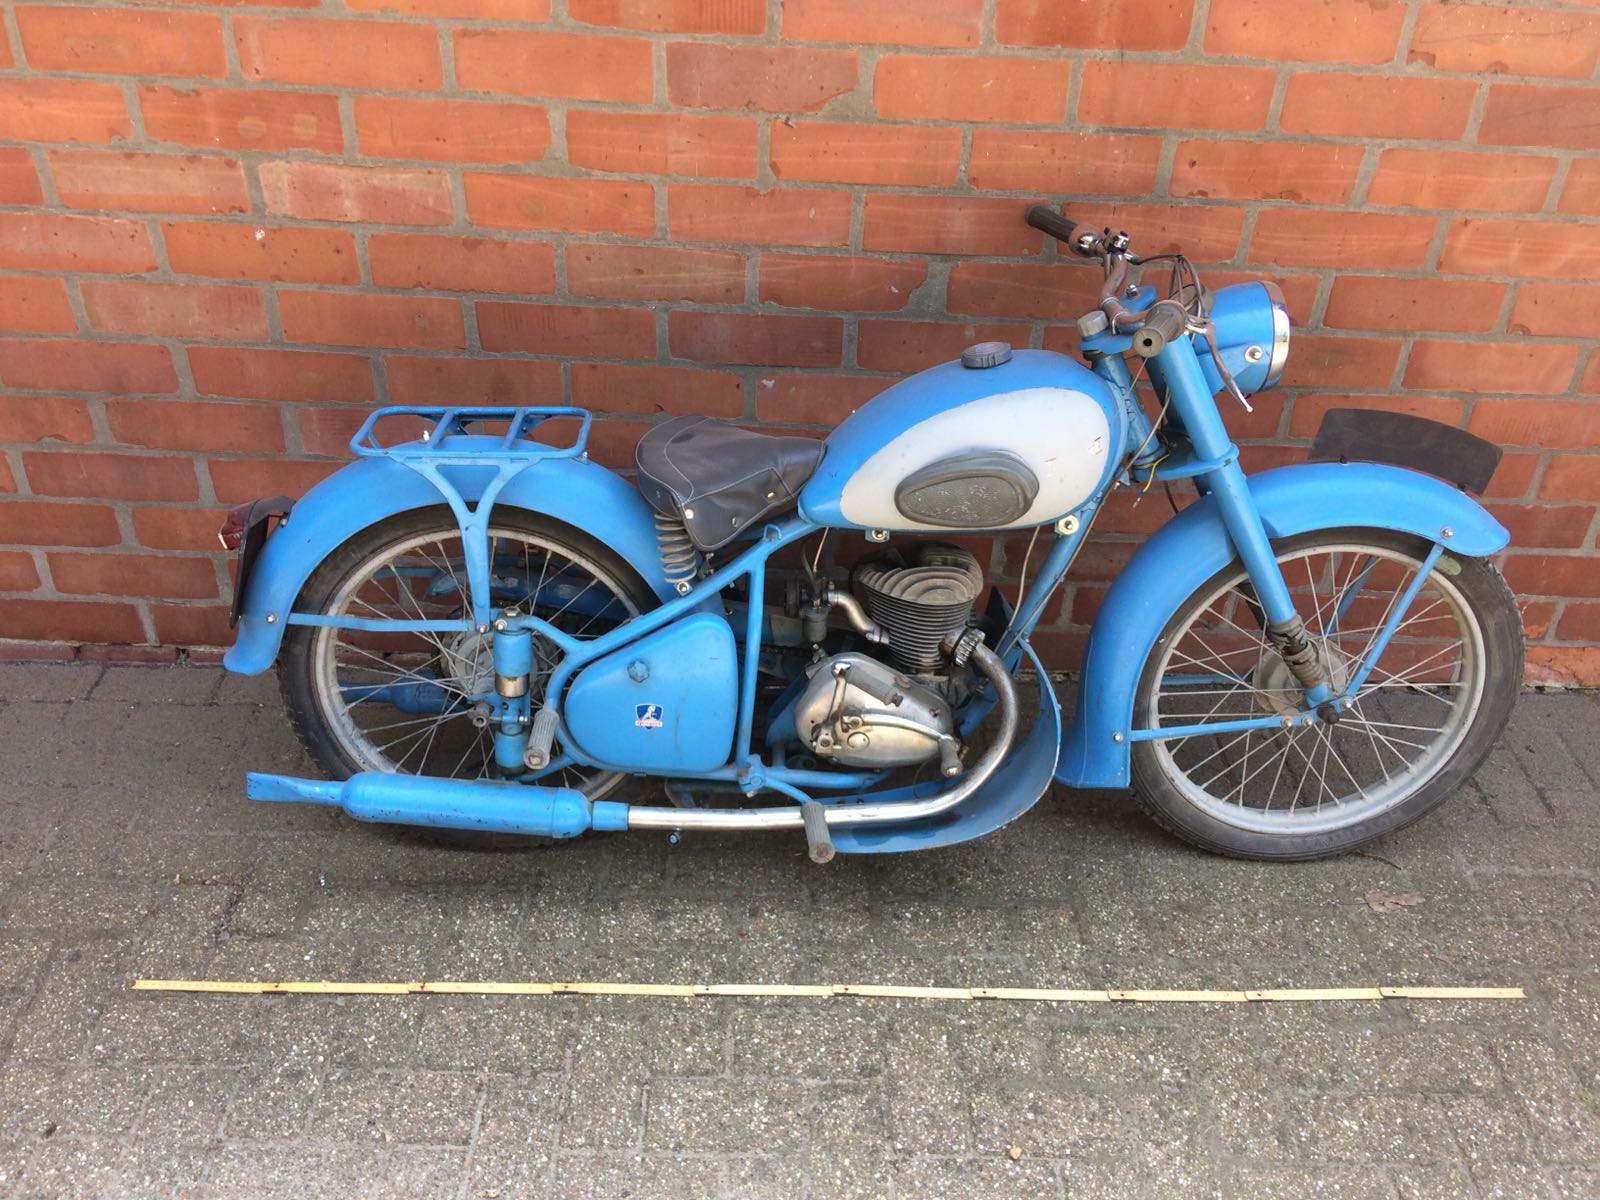 Peugeot 1950's 125c motorcycle with matching helmet. Lot 1009. Estimate £1200-£2400.